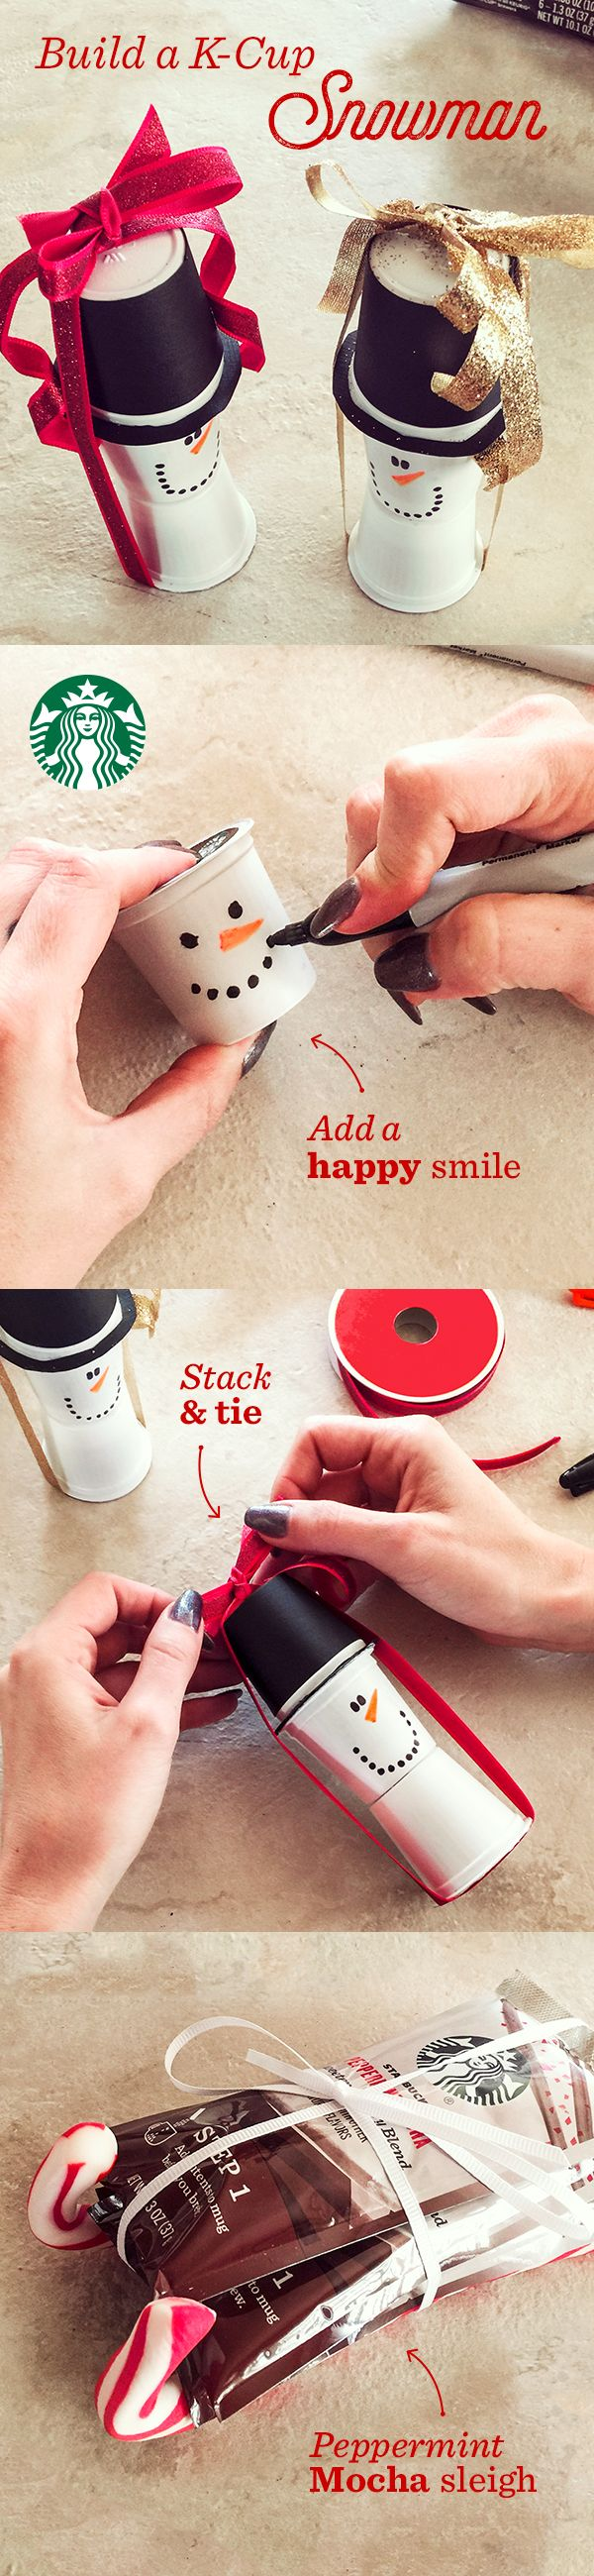 Stack your Starbucks K-Cup pods  to make a snowman—a perfect decoration, table topper or gift. Start with three pods of any coffee. Using felt-tip markers, give the snowman a happy grin on a blank pod. Next, wrap the second pod in construction paper to create the hat. Now, simply stack the three pods and wrap with a piece of ribbon, tied tightly to keep the snowman together. Bonus points for building a sleigh out of a flavor packet or VIA Instant packet with candy cane rails.